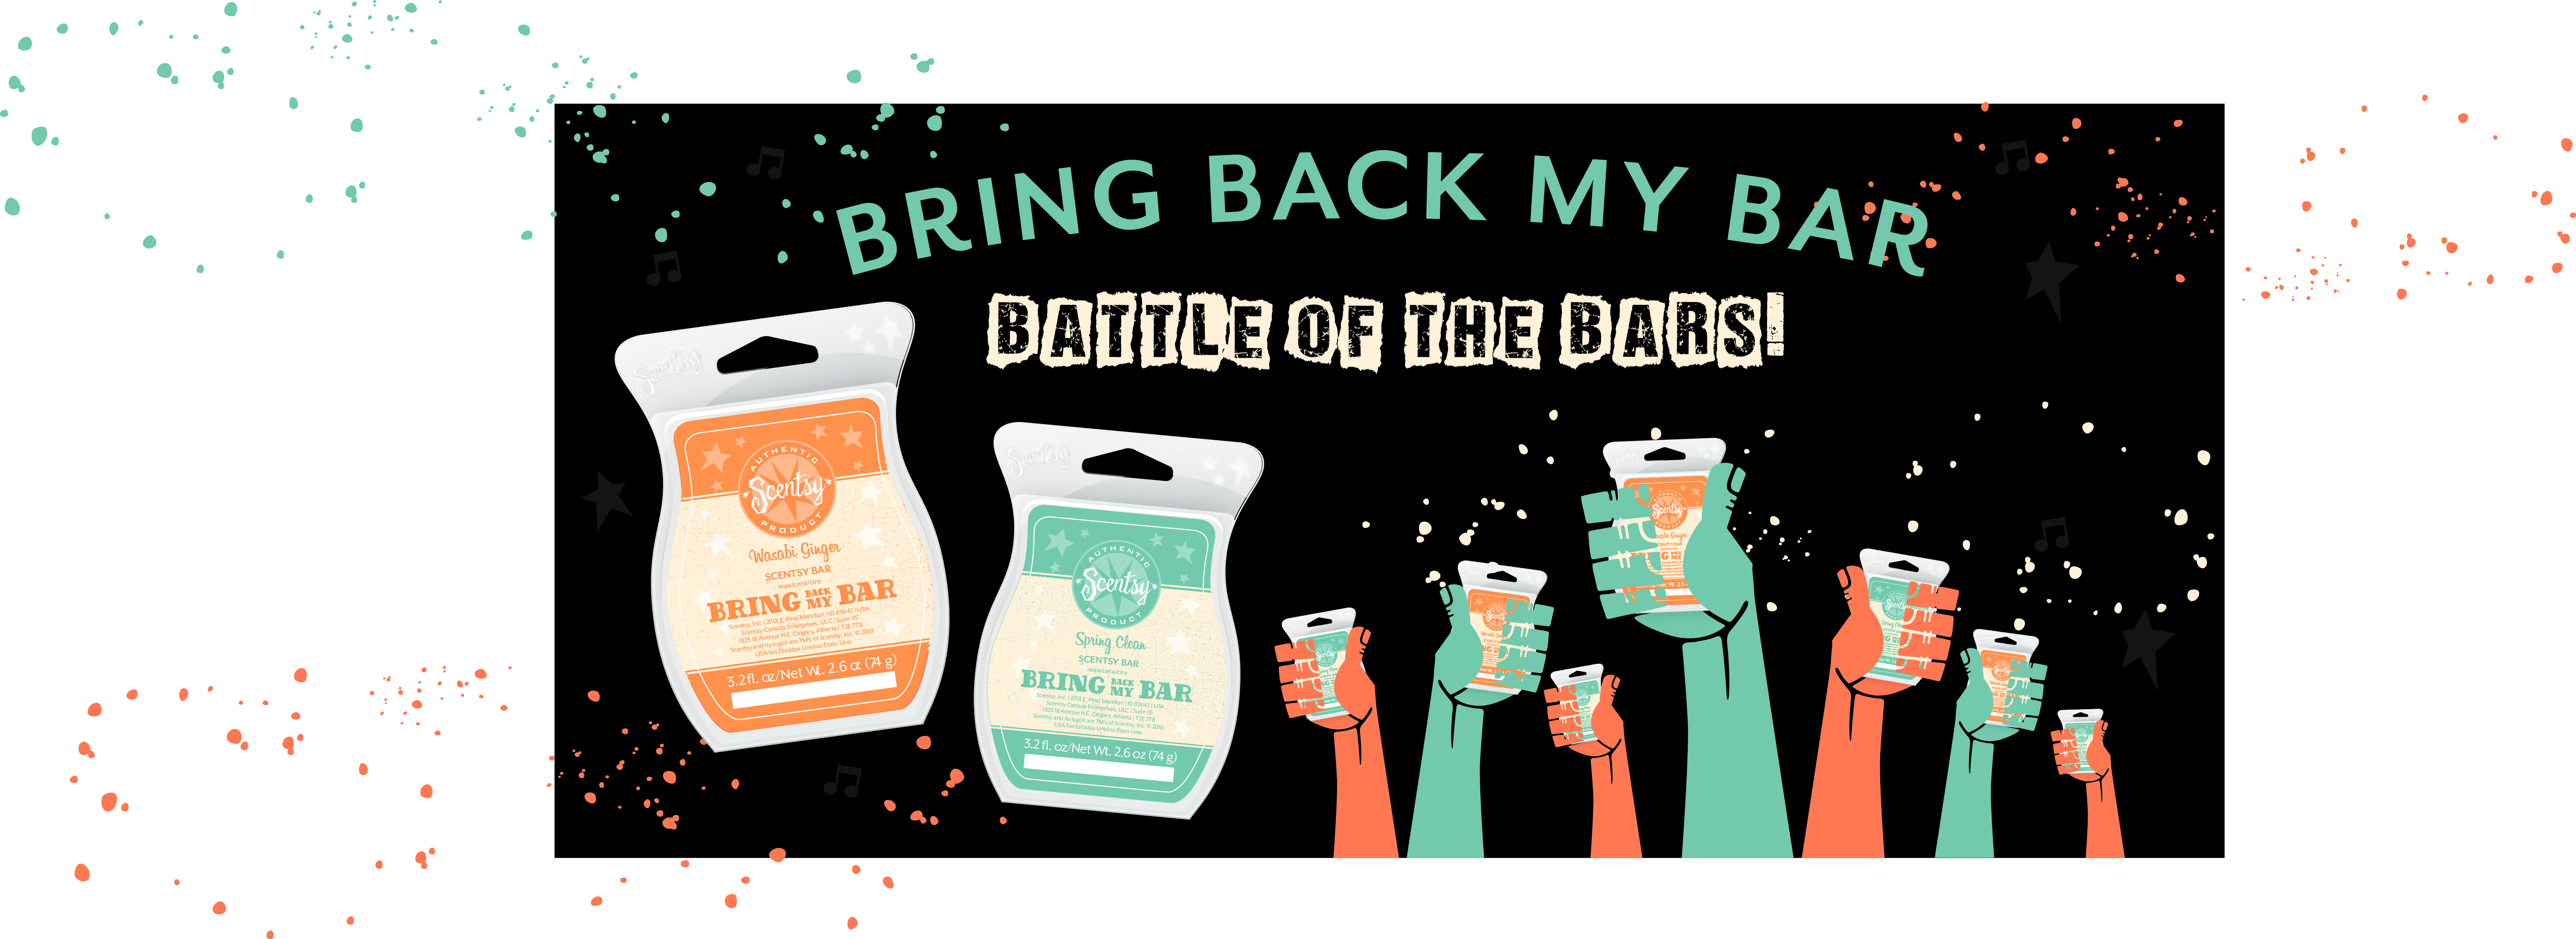 Bring Back My Bar Questions Answers Scentsy Blog